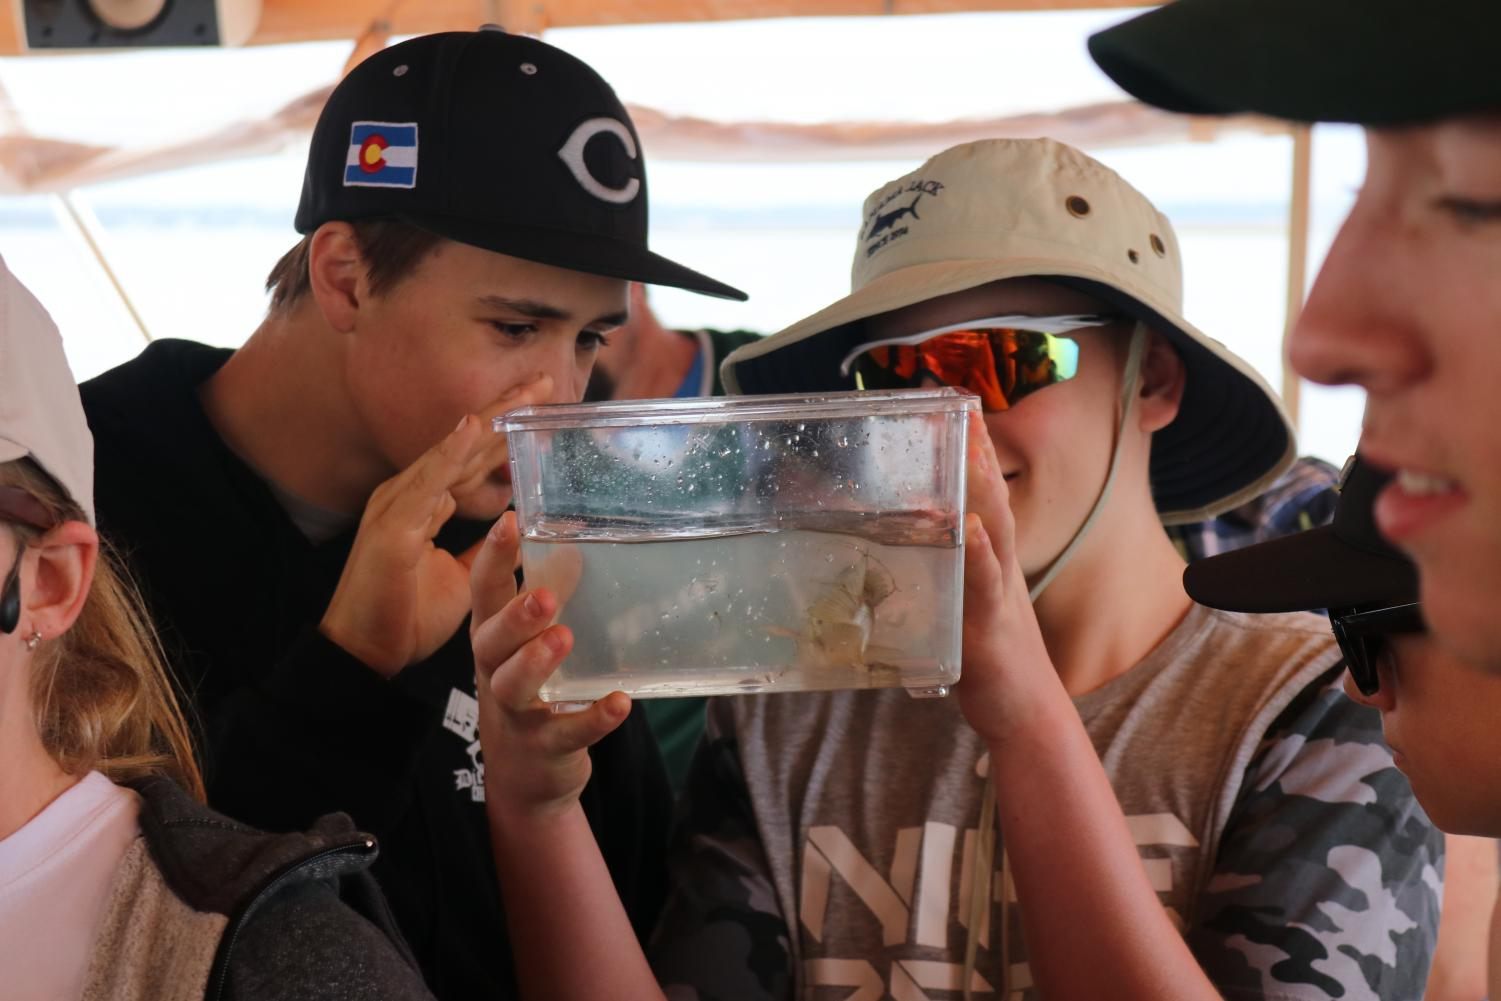 Landlocked Colorado baseball players enjoy getting up close and personal with sea creatures between games and practices at Amelia Island, Florida, over Spring Break 2018.